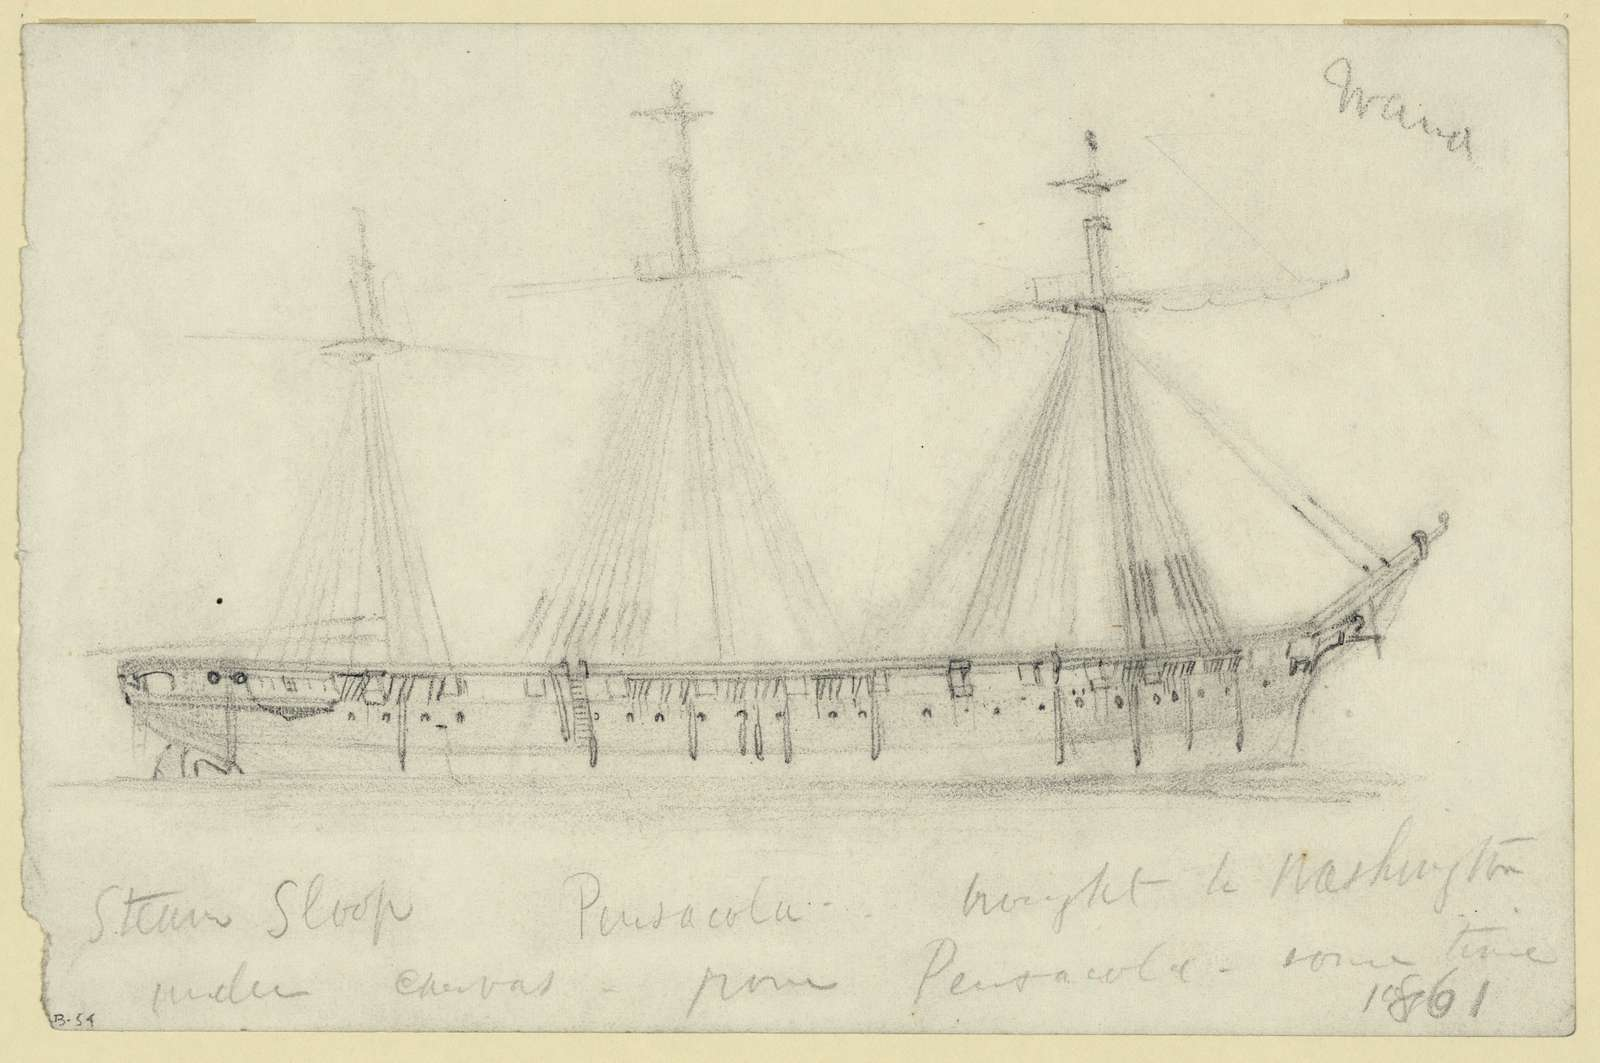 Steam Sloop Pensacola brought to Washington under canvas from Pensacola, some time 1861